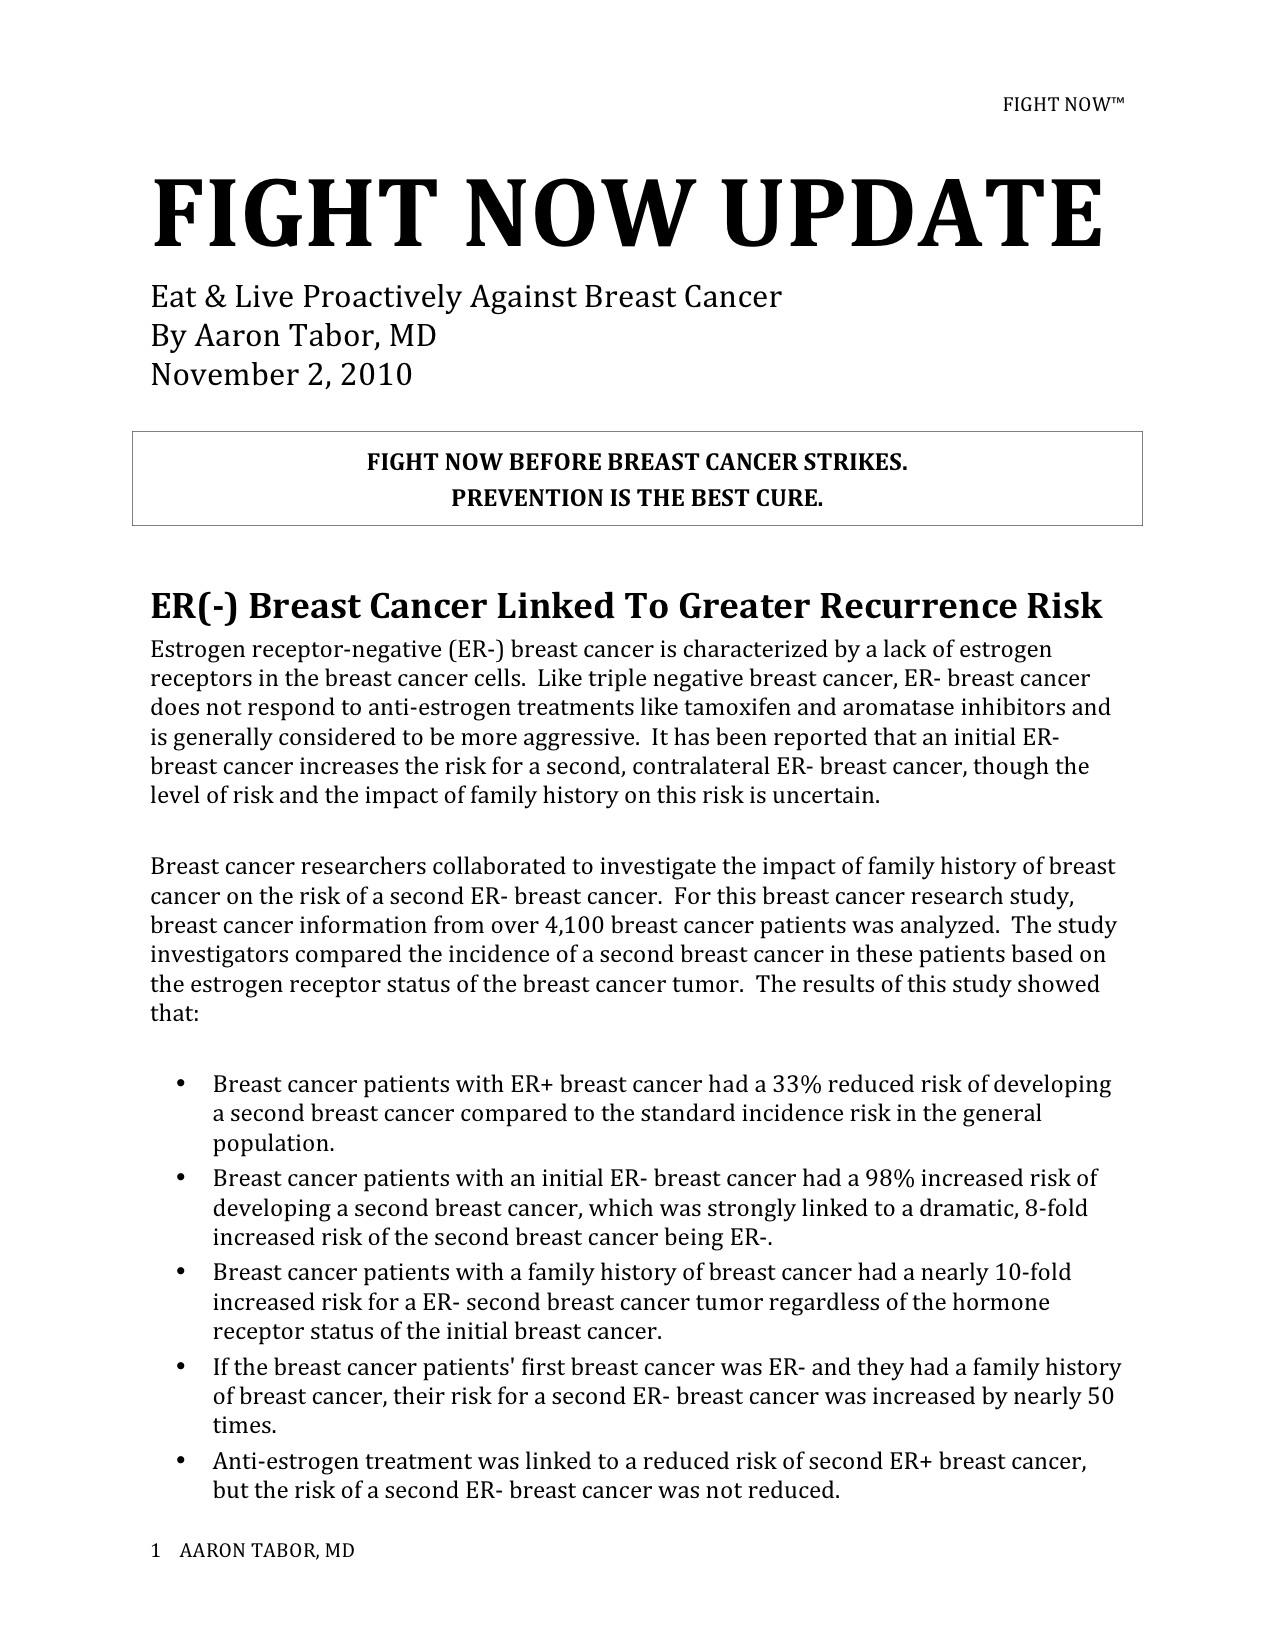 Fight Now Breast Cancer Newsletter - November 2nd, 2010